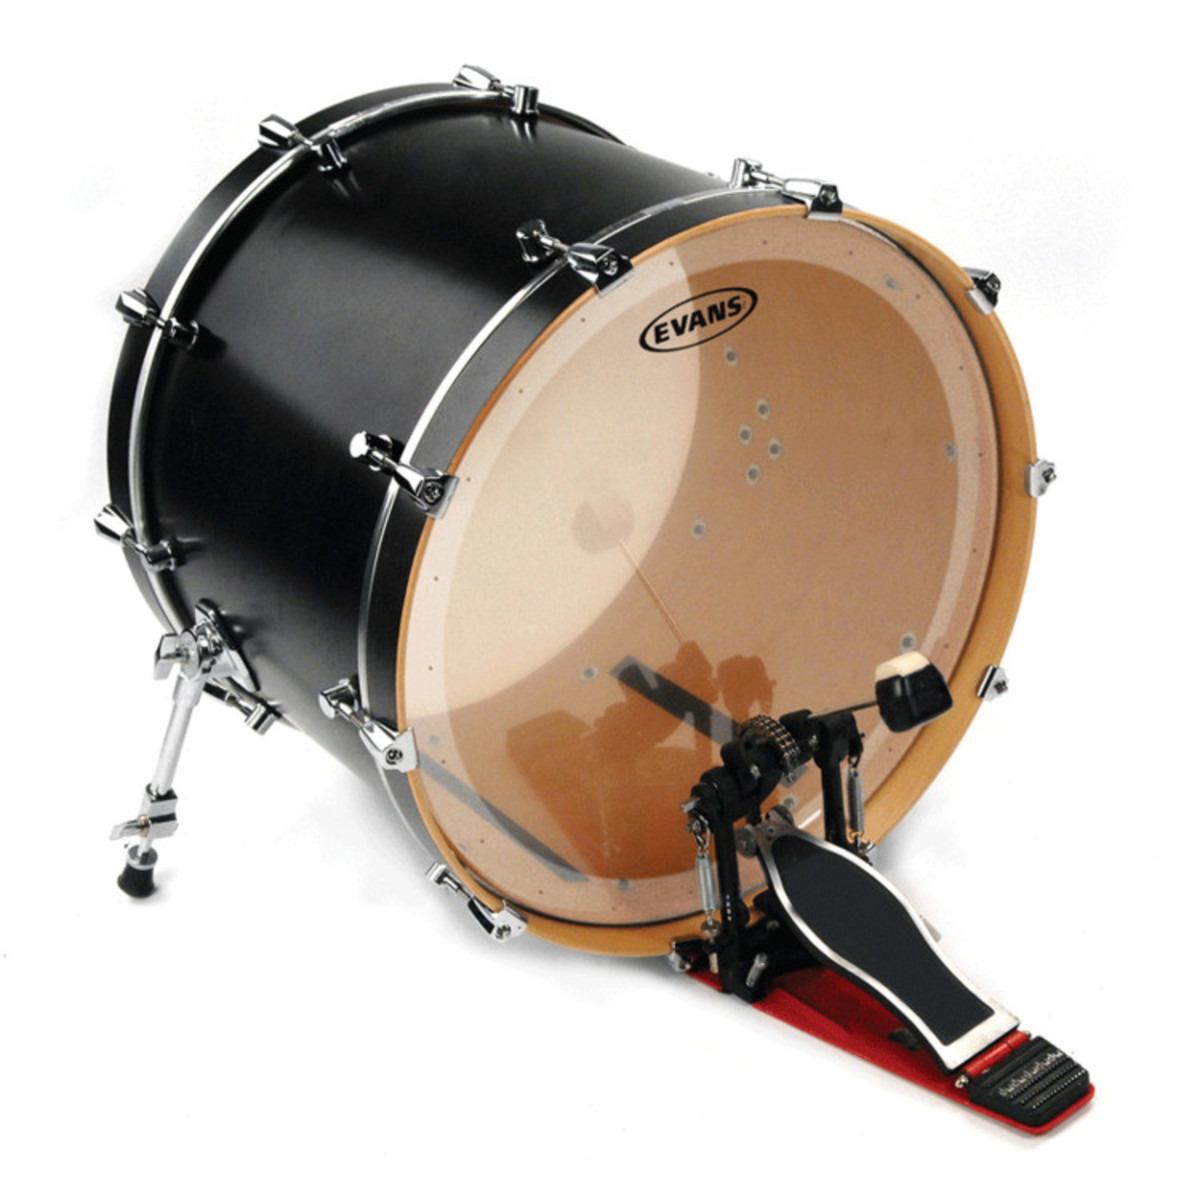 disc evans eq2 clear bass drum head 20 inch at gear4music. Black Bedroom Furniture Sets. Home Design Ideas